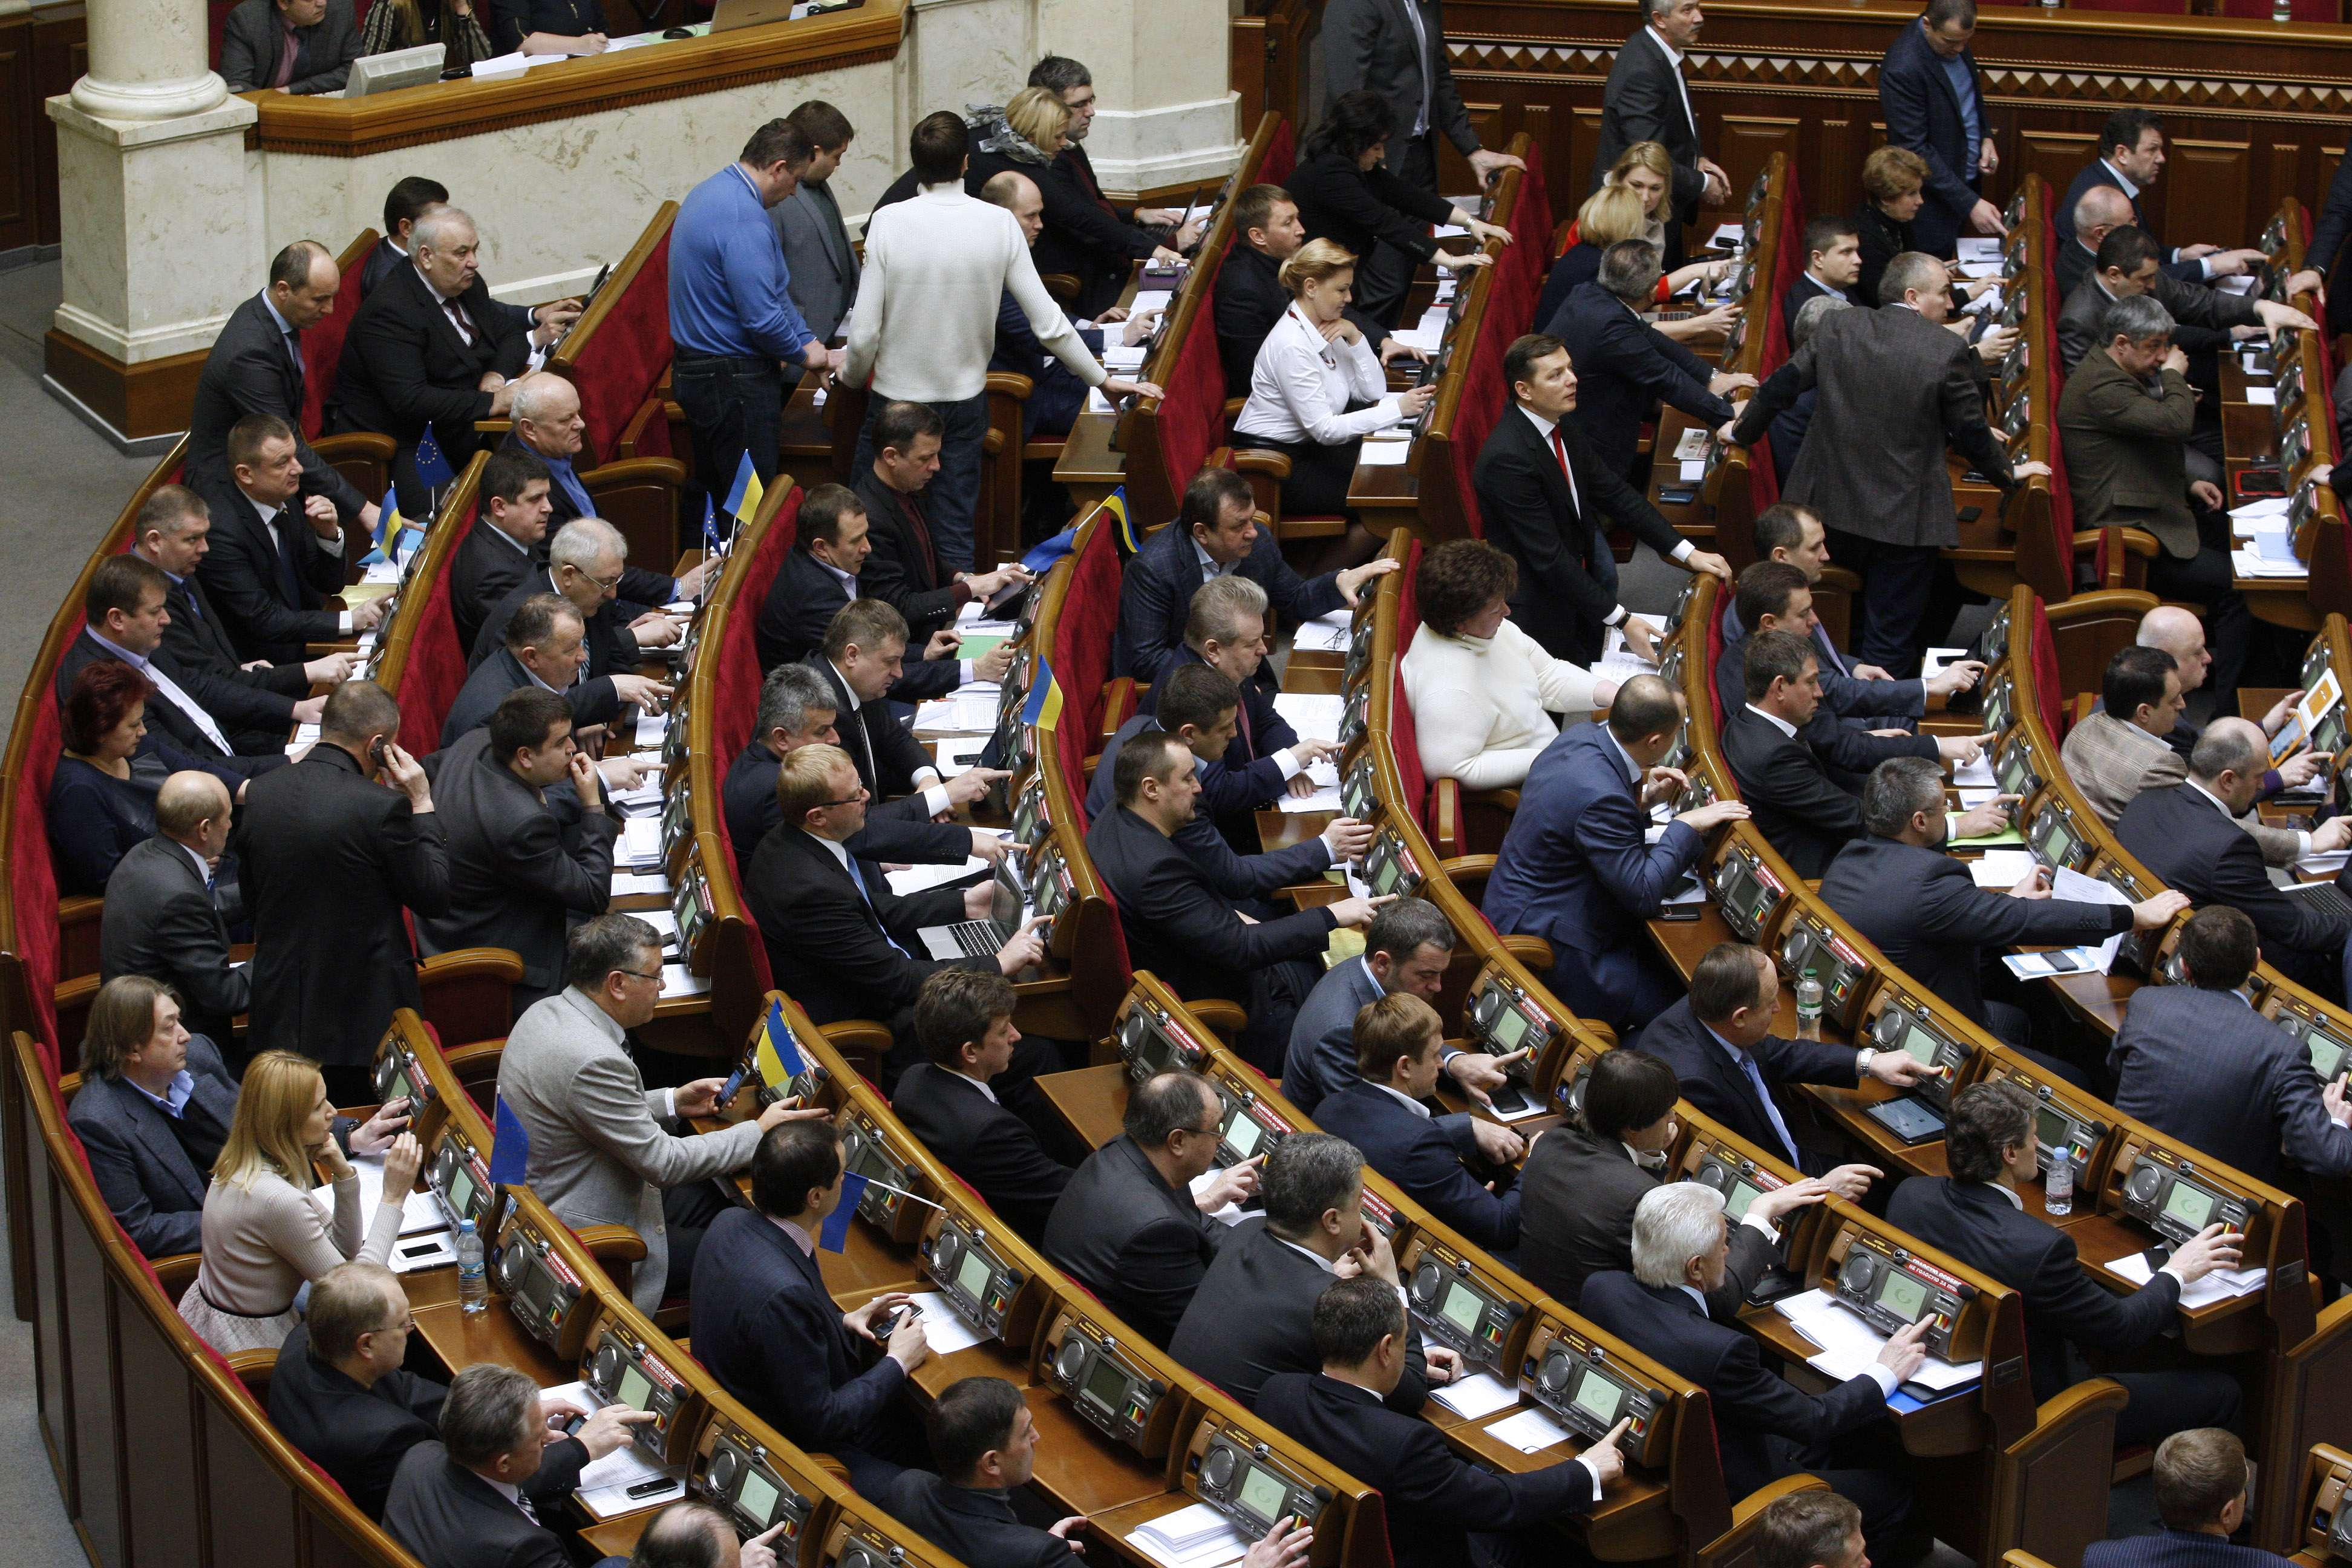 Ukraine's MPs attend a parliamentary session on Monday, in Kiev. Ukrainian troops will remain in Crimea, the country's defence minister said that day even as media reported the separatist peninsula planned to disband Ukrainian units there ( AFP PHOTO/ YURY KIRNICHNY)